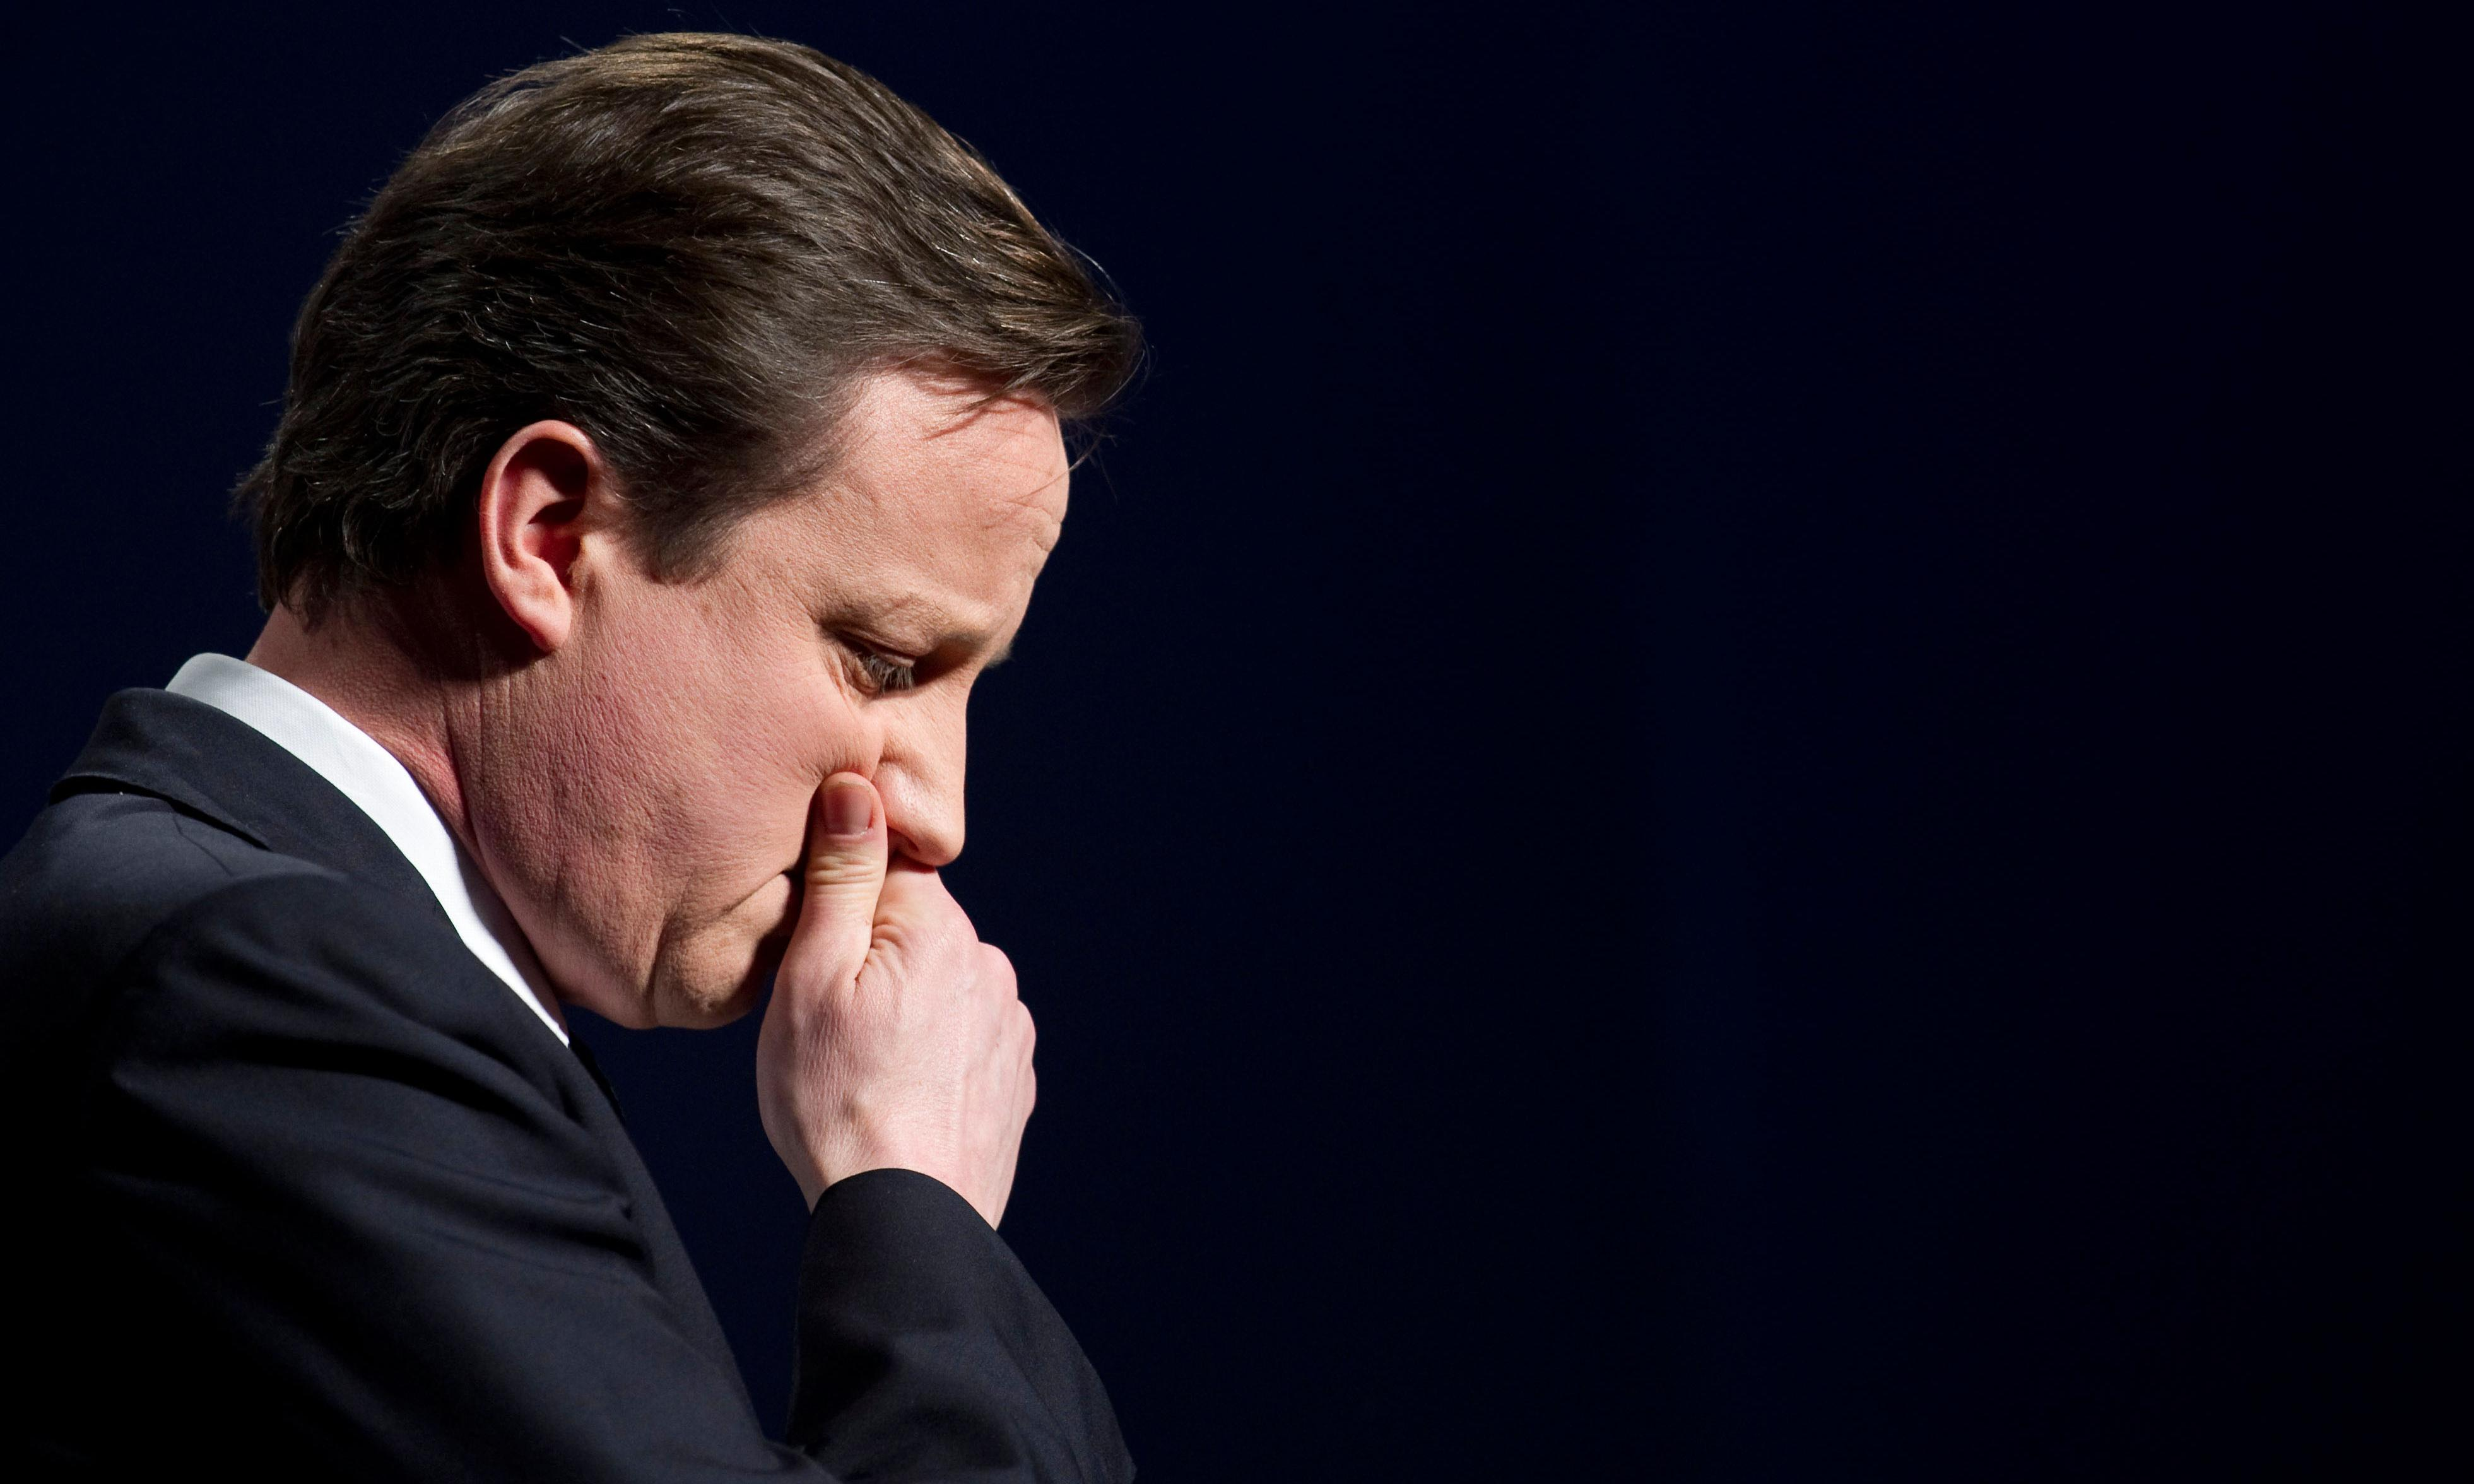 Cameron may have fought Brexit. But it was his policies that made it happen